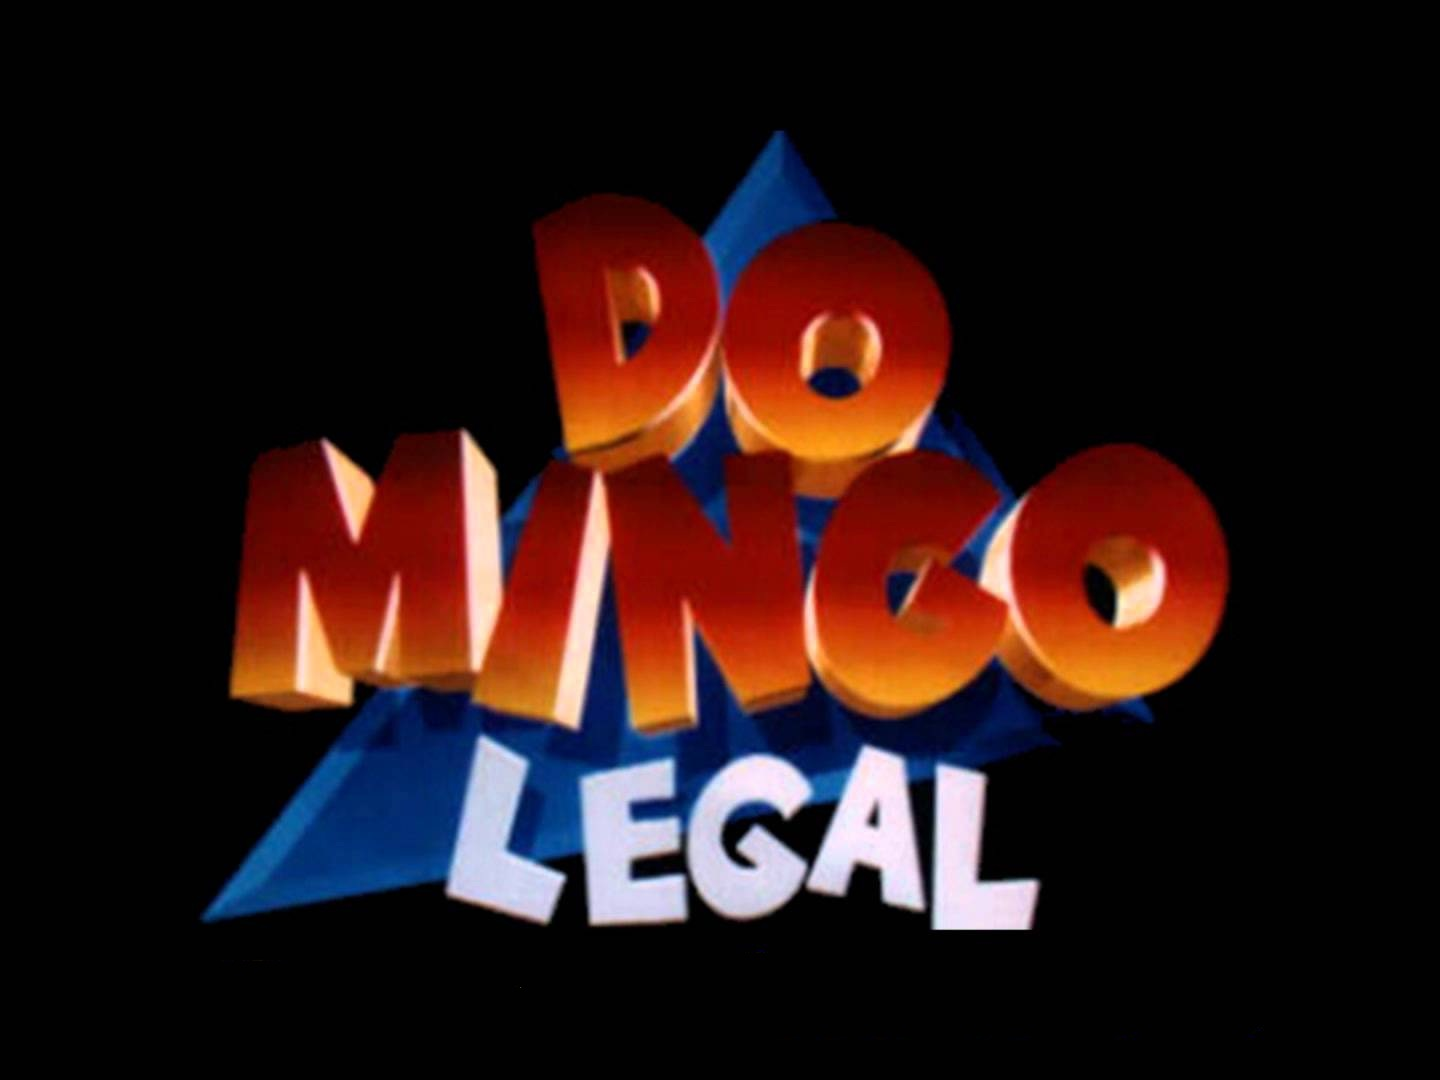 Domingo Legal